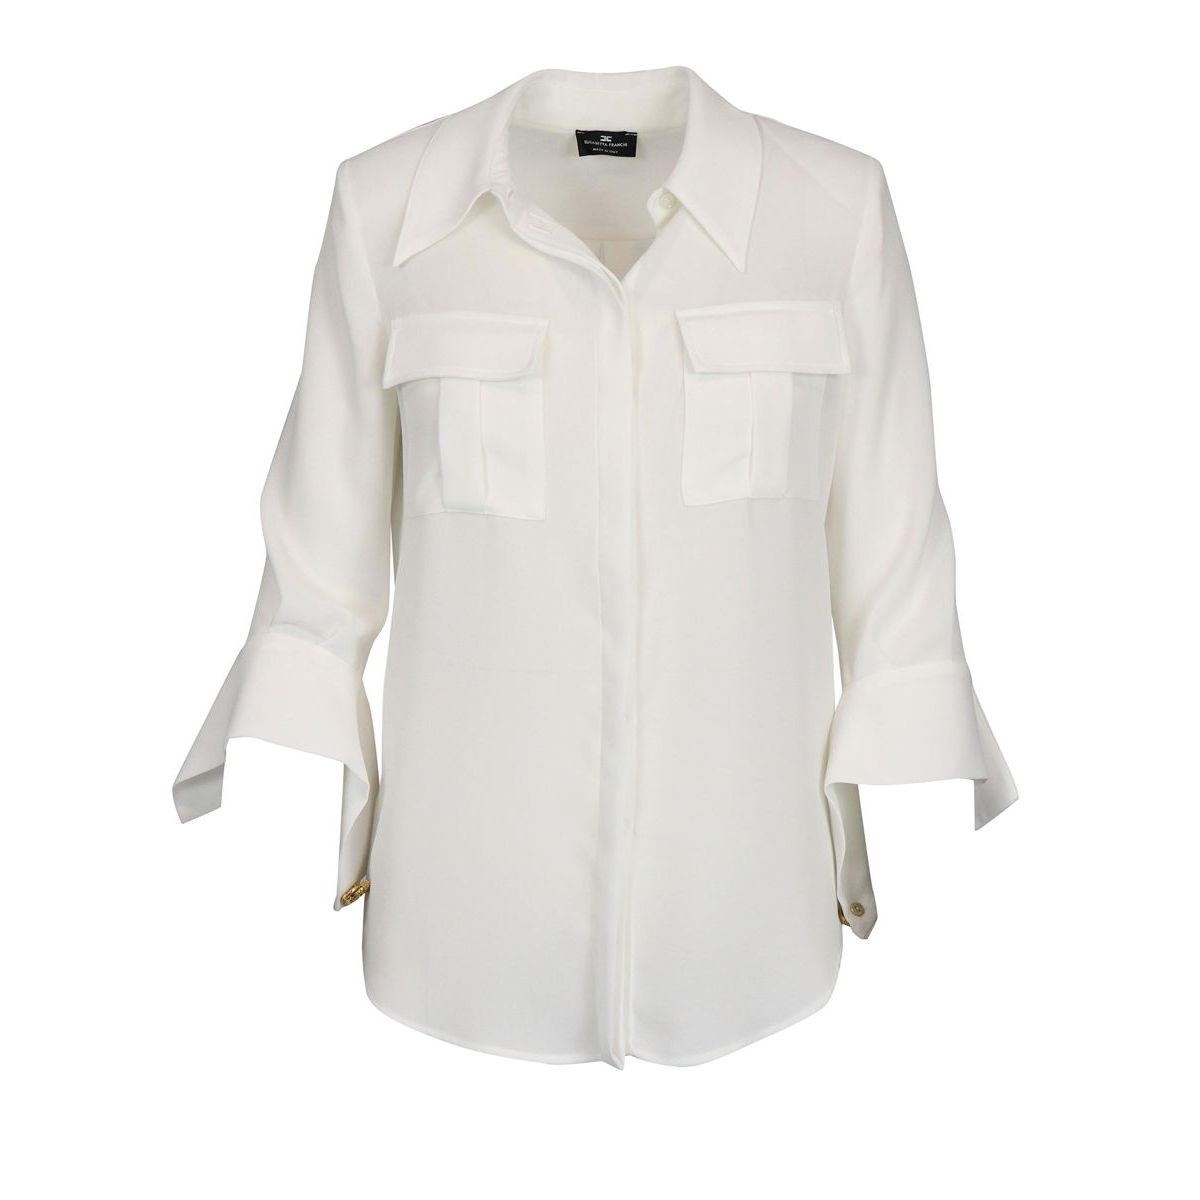 Georgette shirt with pockets Ivory Elisabetta Franchi